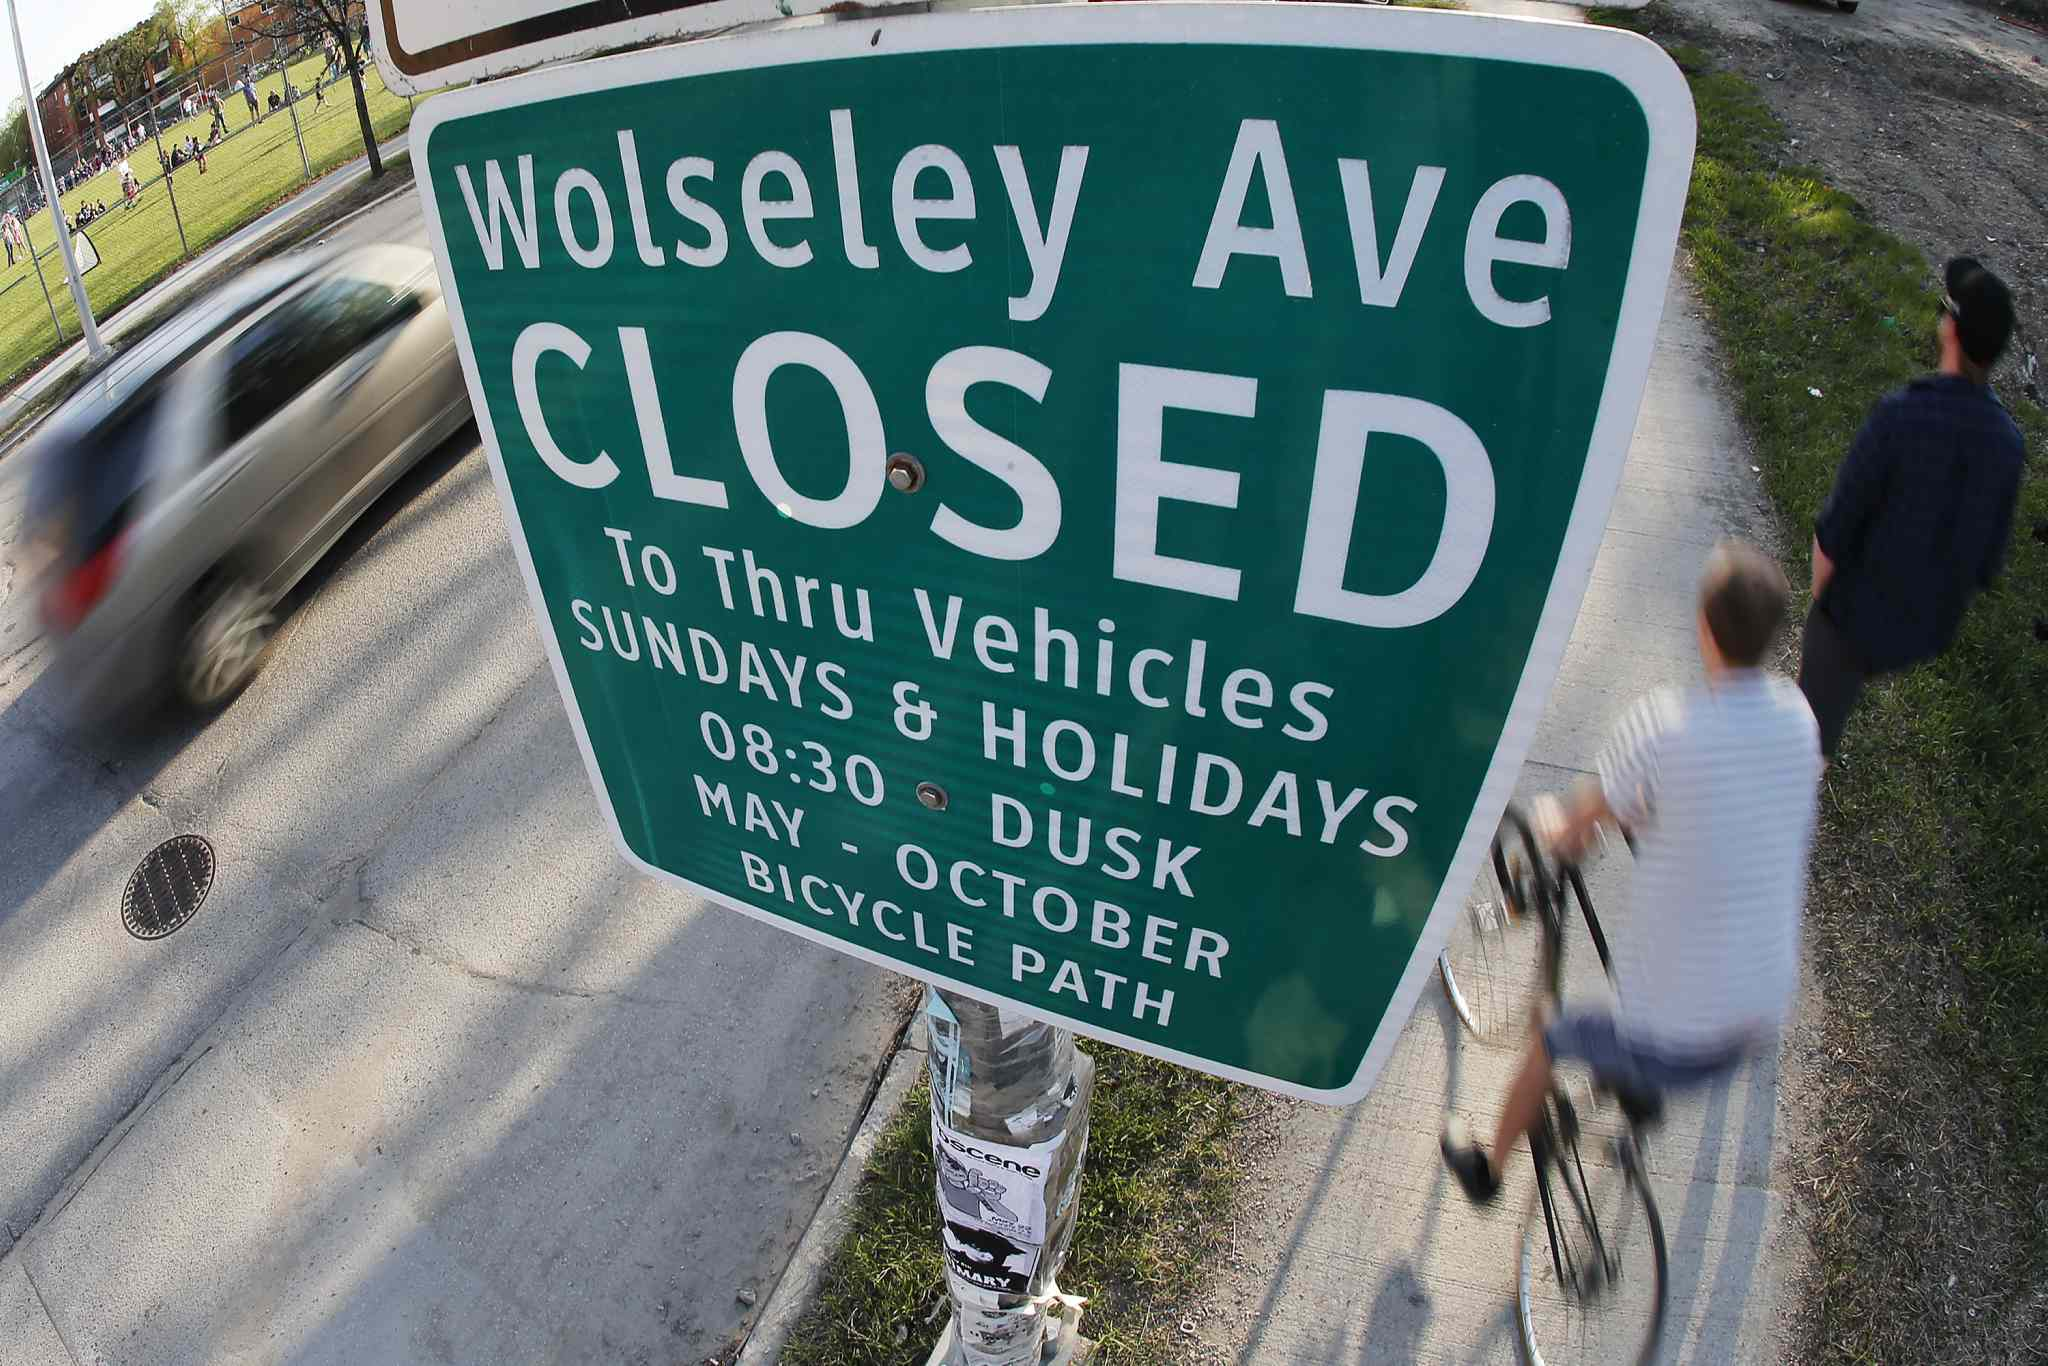 Police will ticket drivers who travel more than one block on designated bike routes on Sundays and holidays beginning May 24. Right now, there is no fine attached to the infraction.